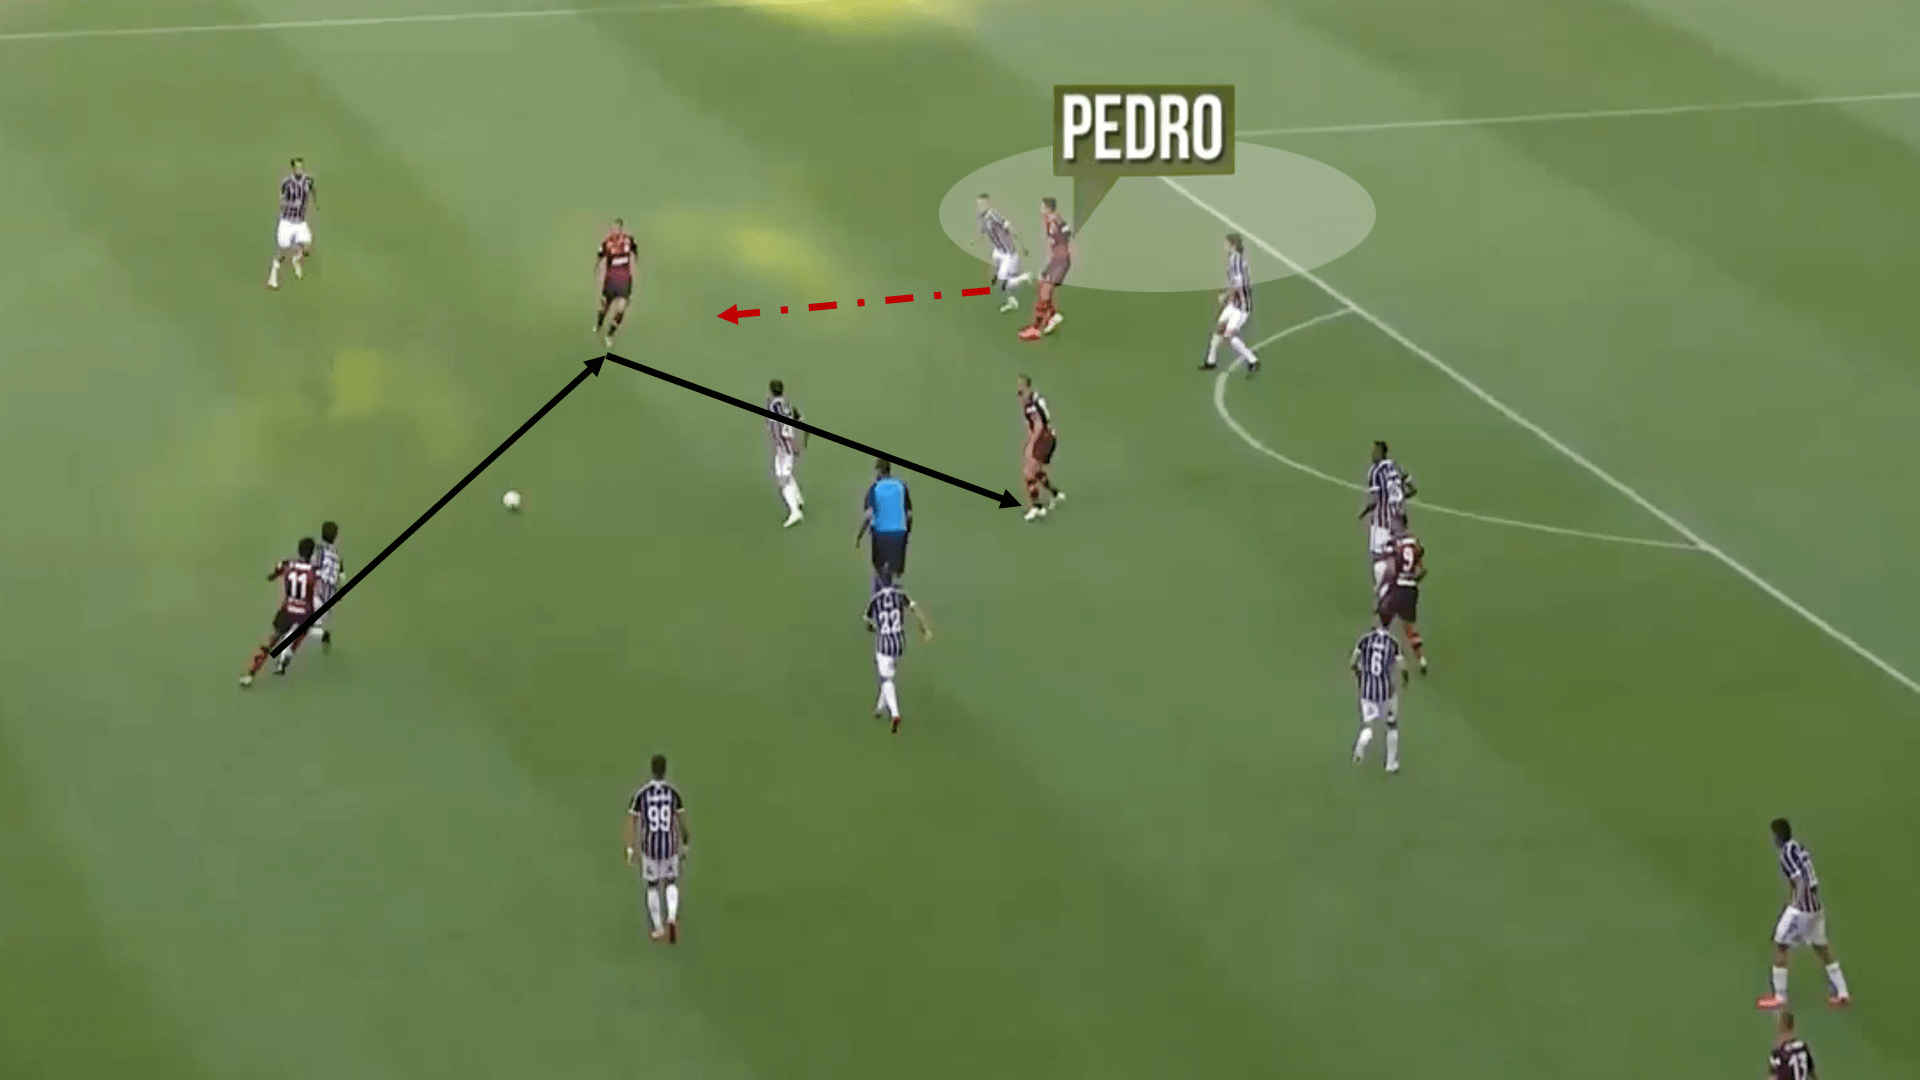 Pedro 2019/20 - scout report - tactical analysis tactics